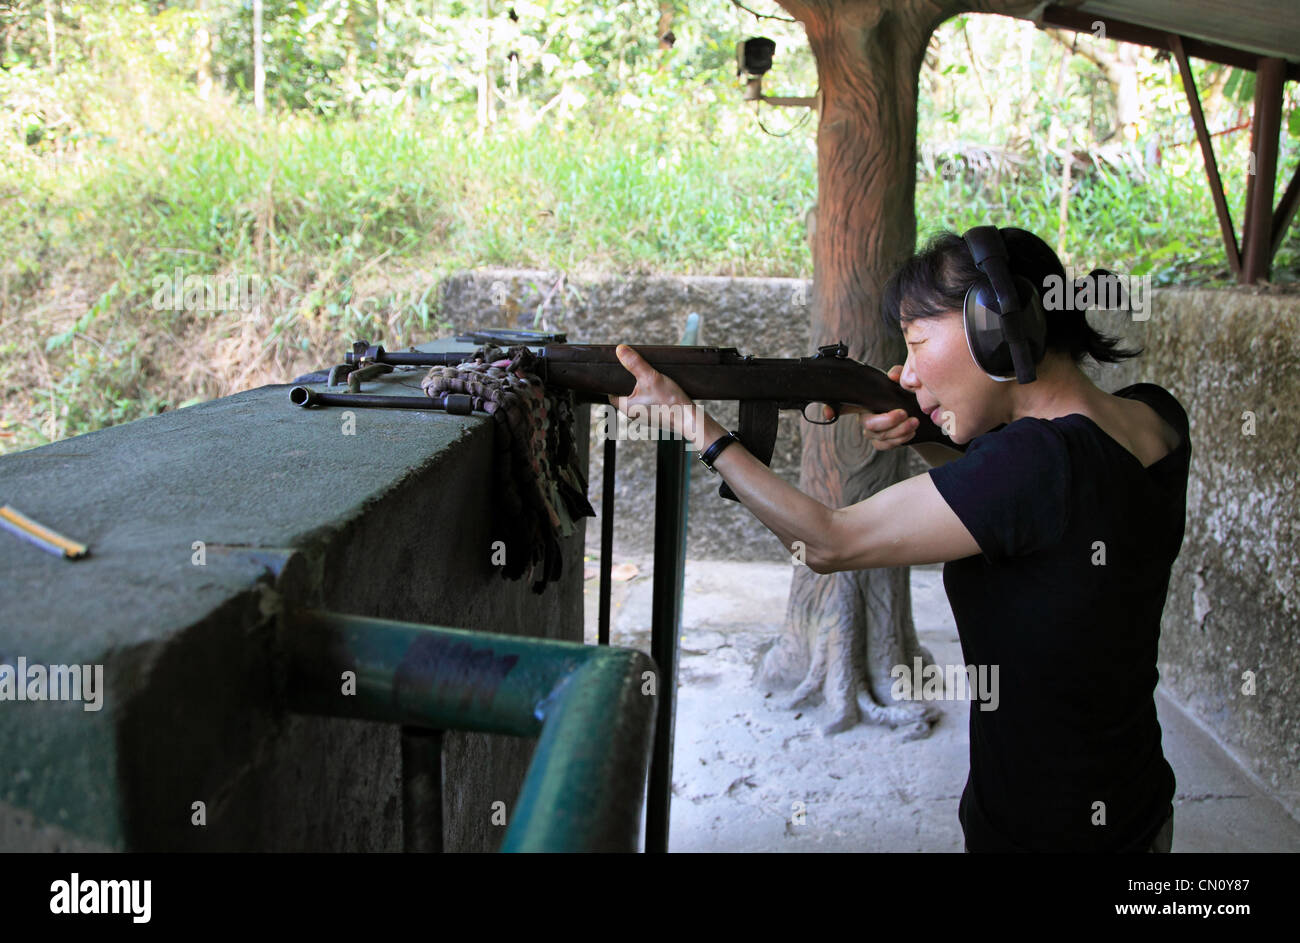 Tourist shooting live ammunition from a rifle, Tay Ninh Province,  Vietnam - Stock Image